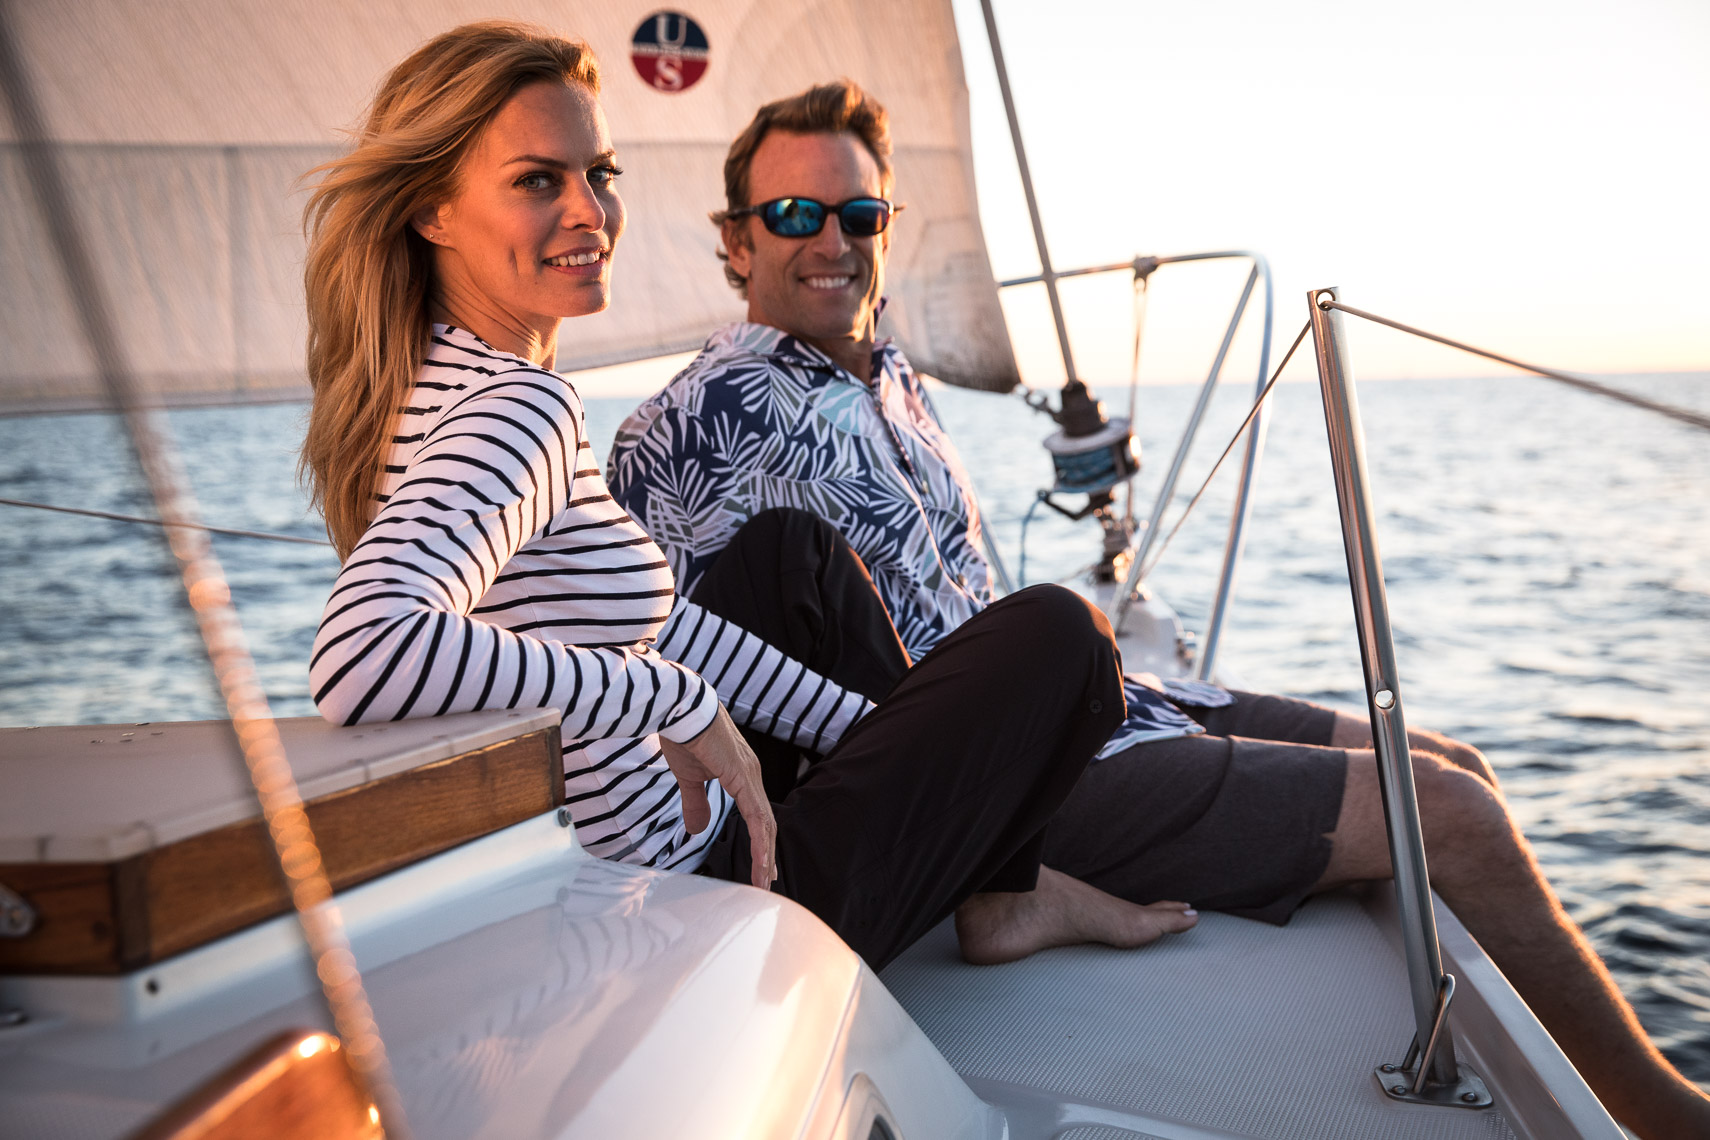 Coolibar Sun Protective Clothing Sailing Lifestyle Photoshoot San Diego